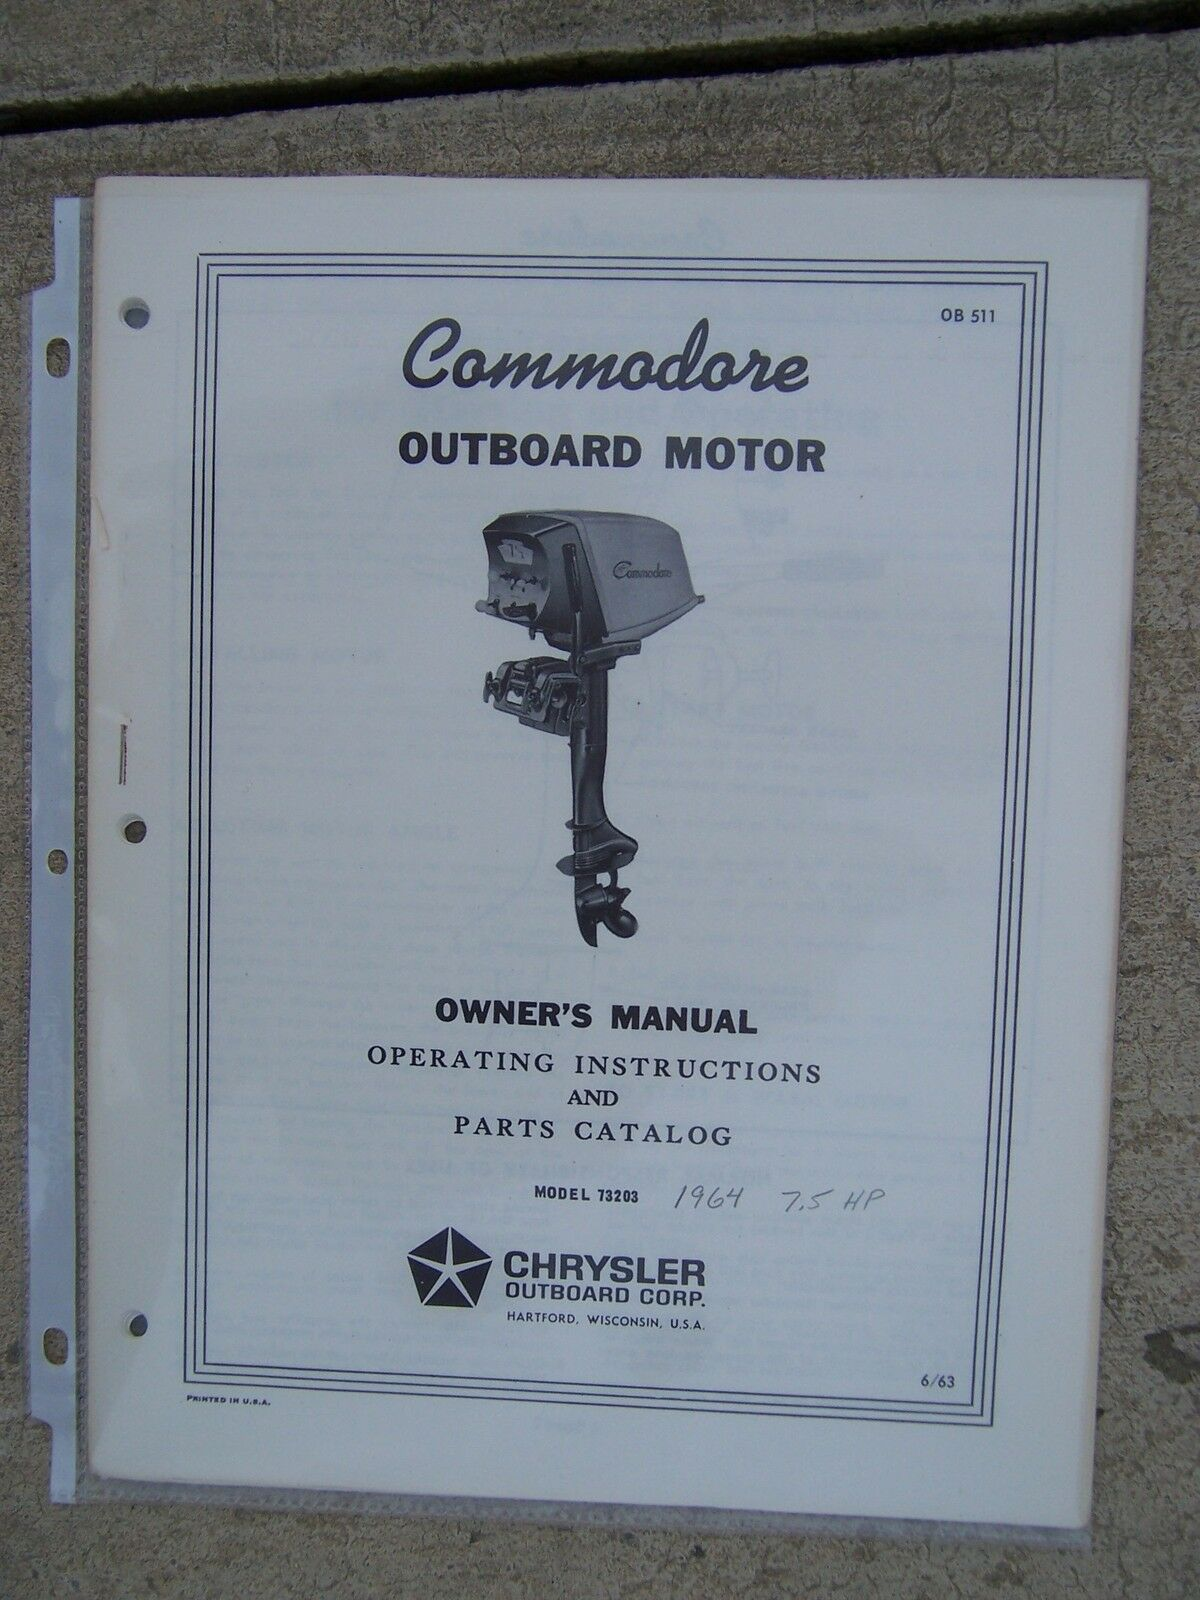 1964 Commodore Outboard Motor 7.5 HP 73203 Owner Manual Parts Catalog  Chrysler U 1 of 1Only 1 available ...